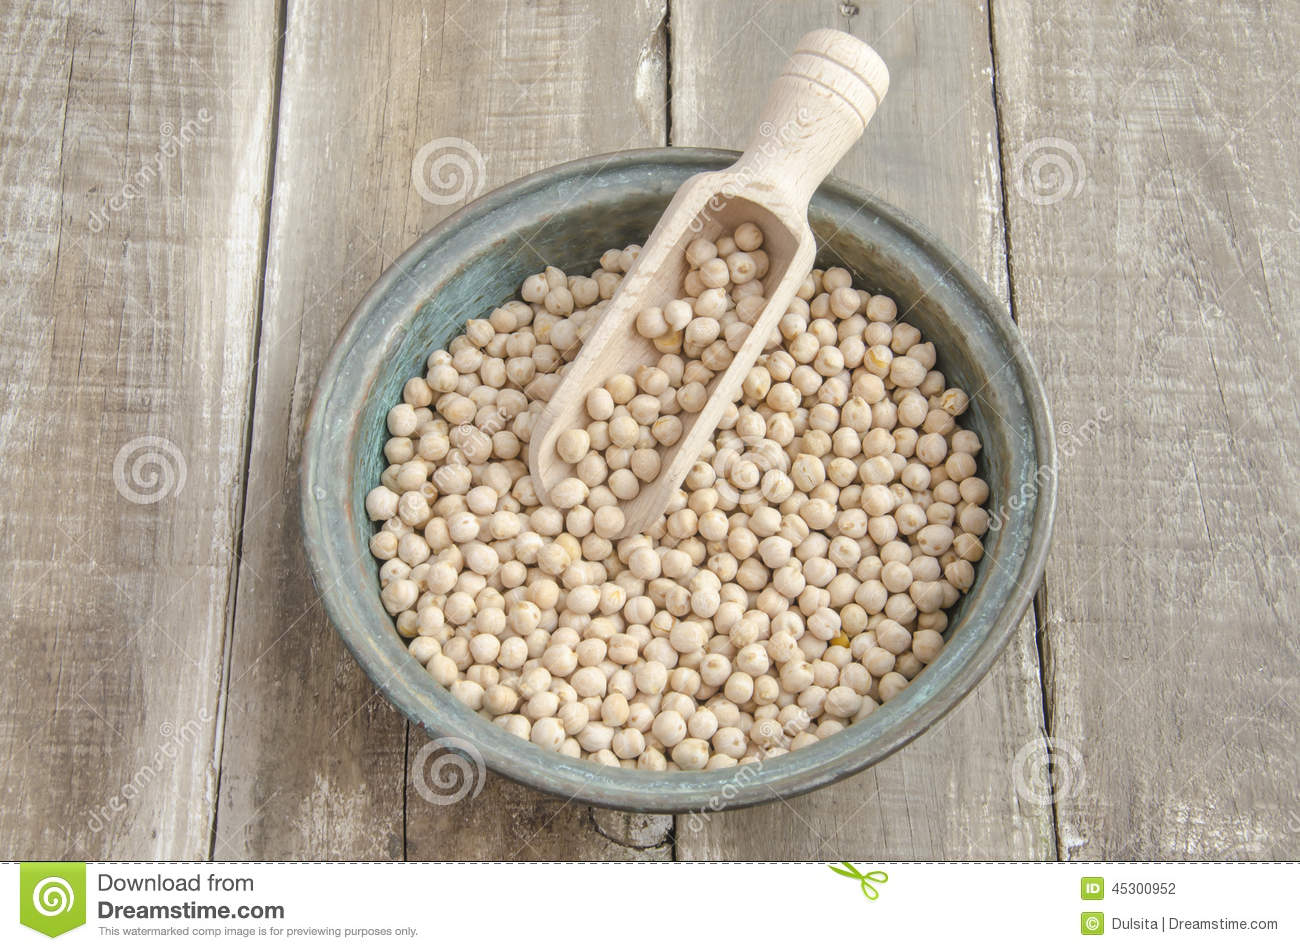 how to prepare dried chick peas